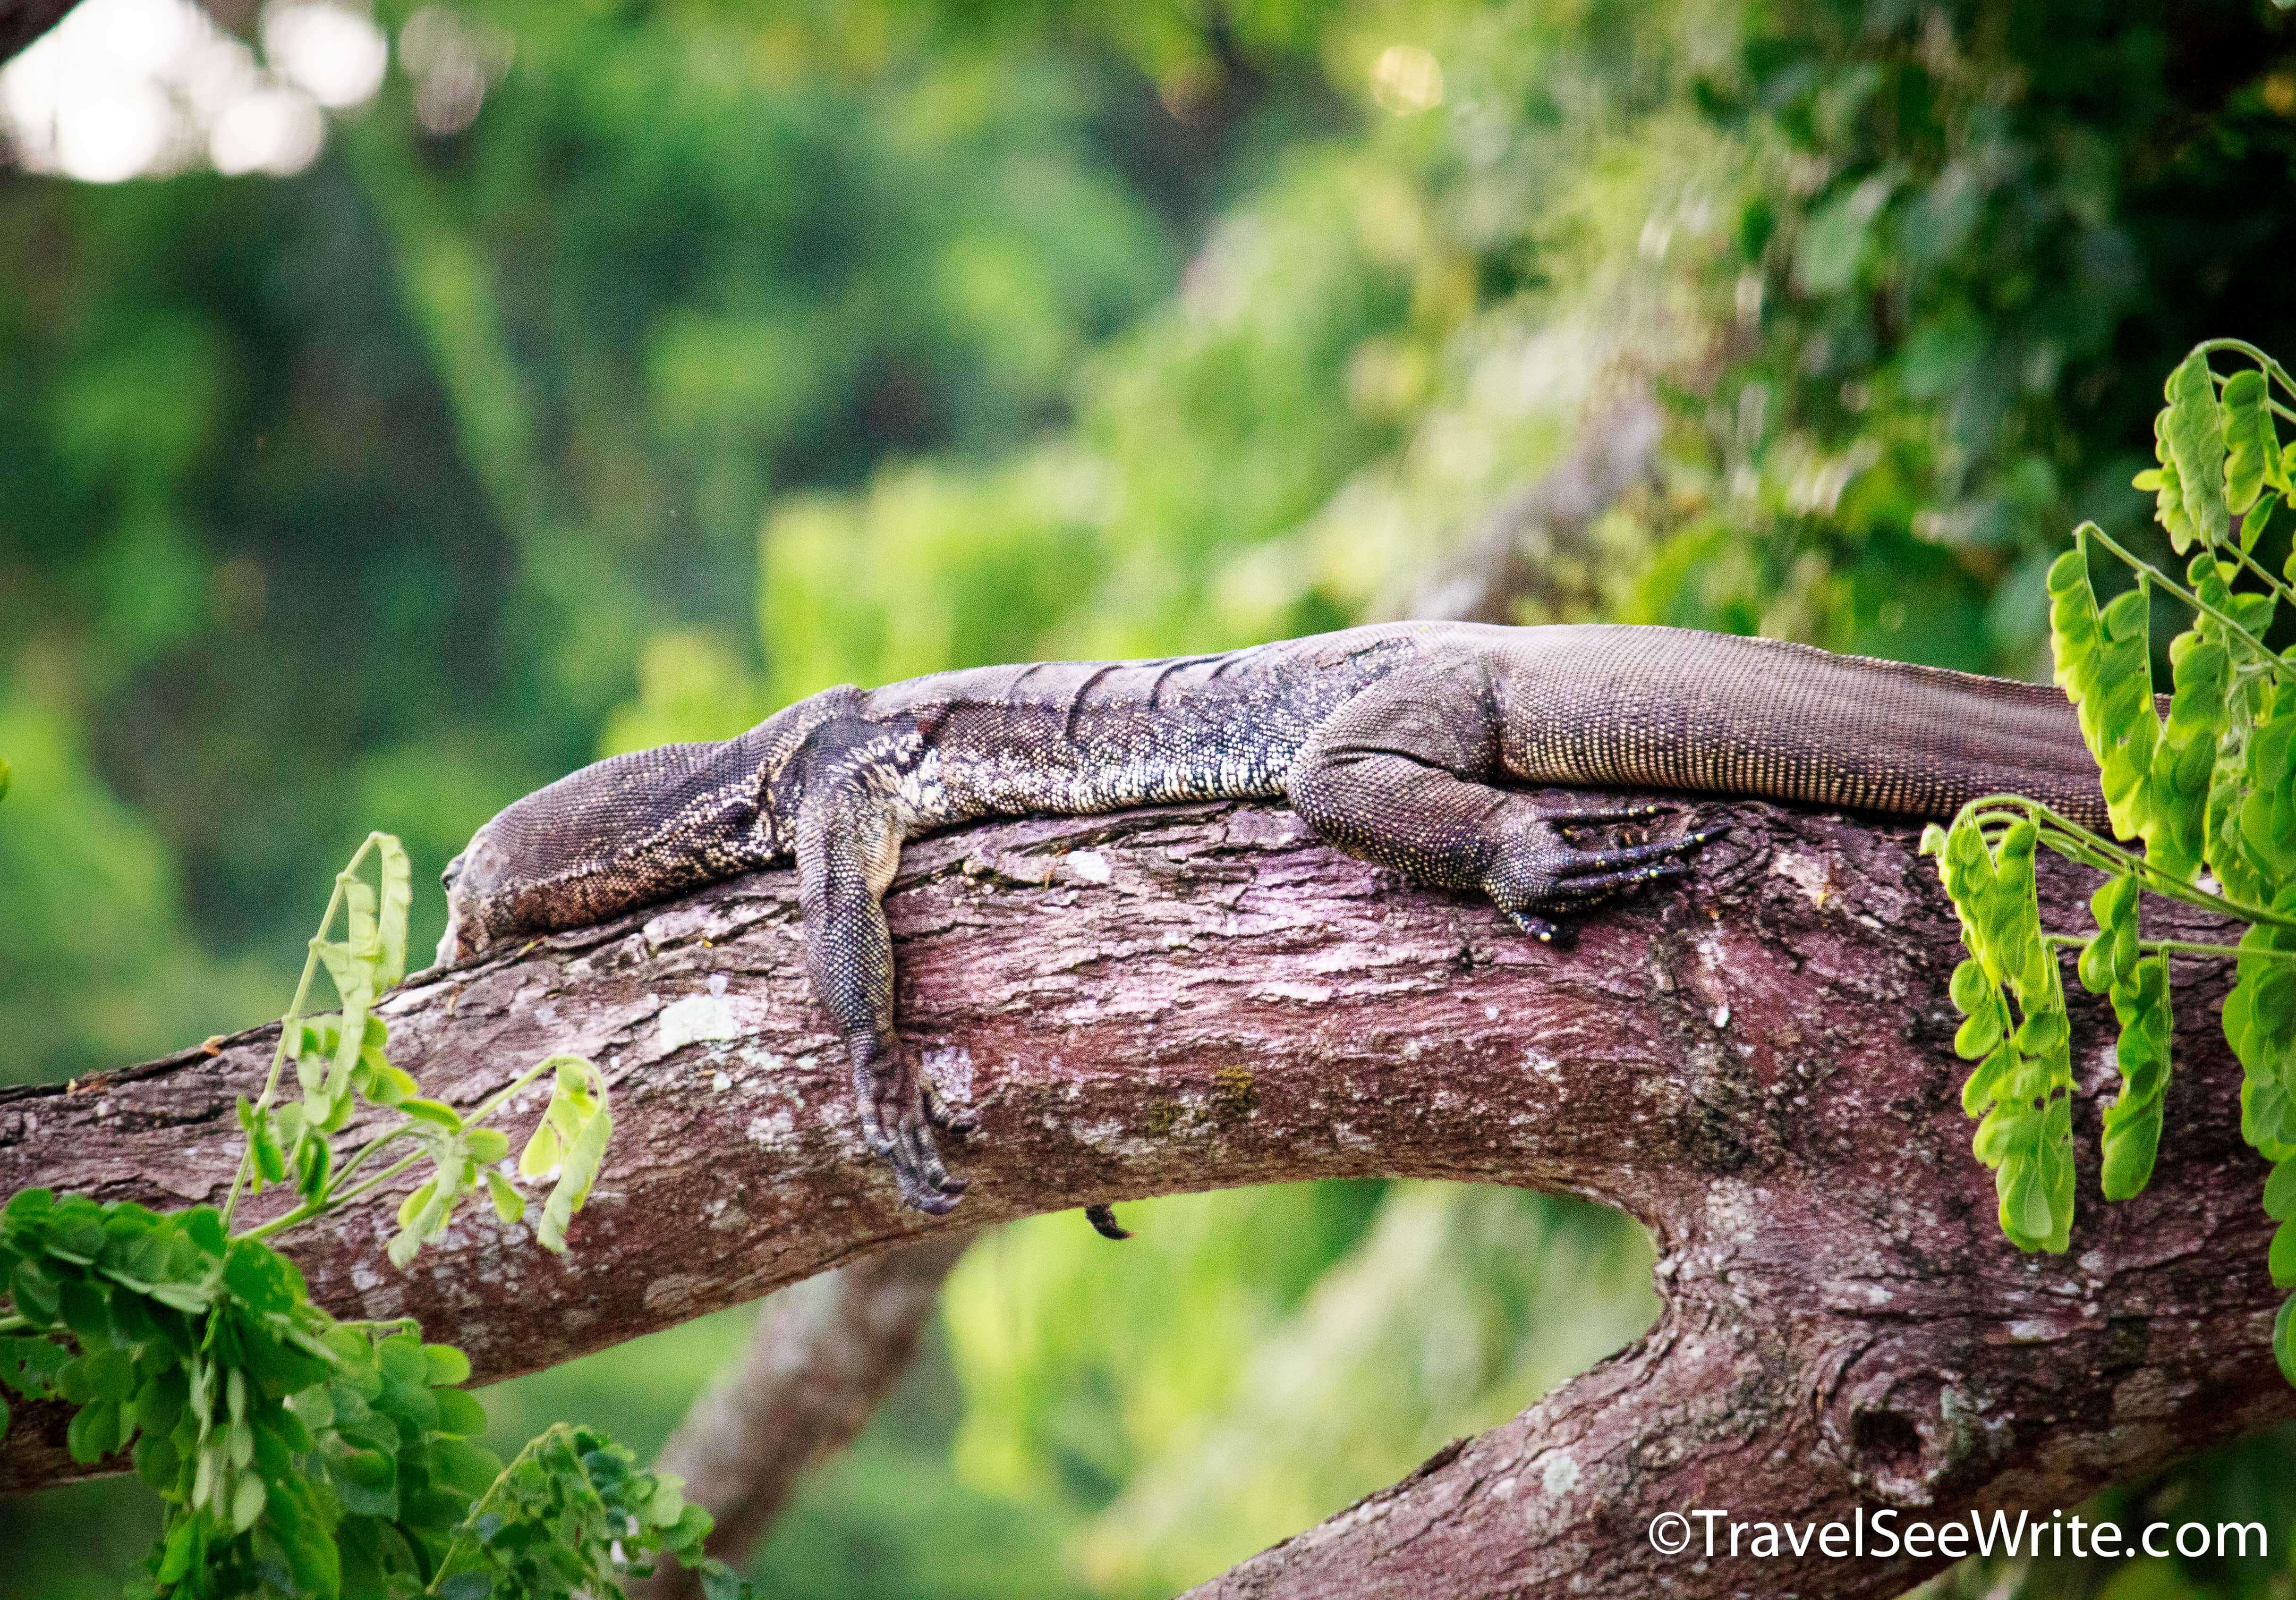 A monitor lizard snoozing on a branch - southeast asia travel